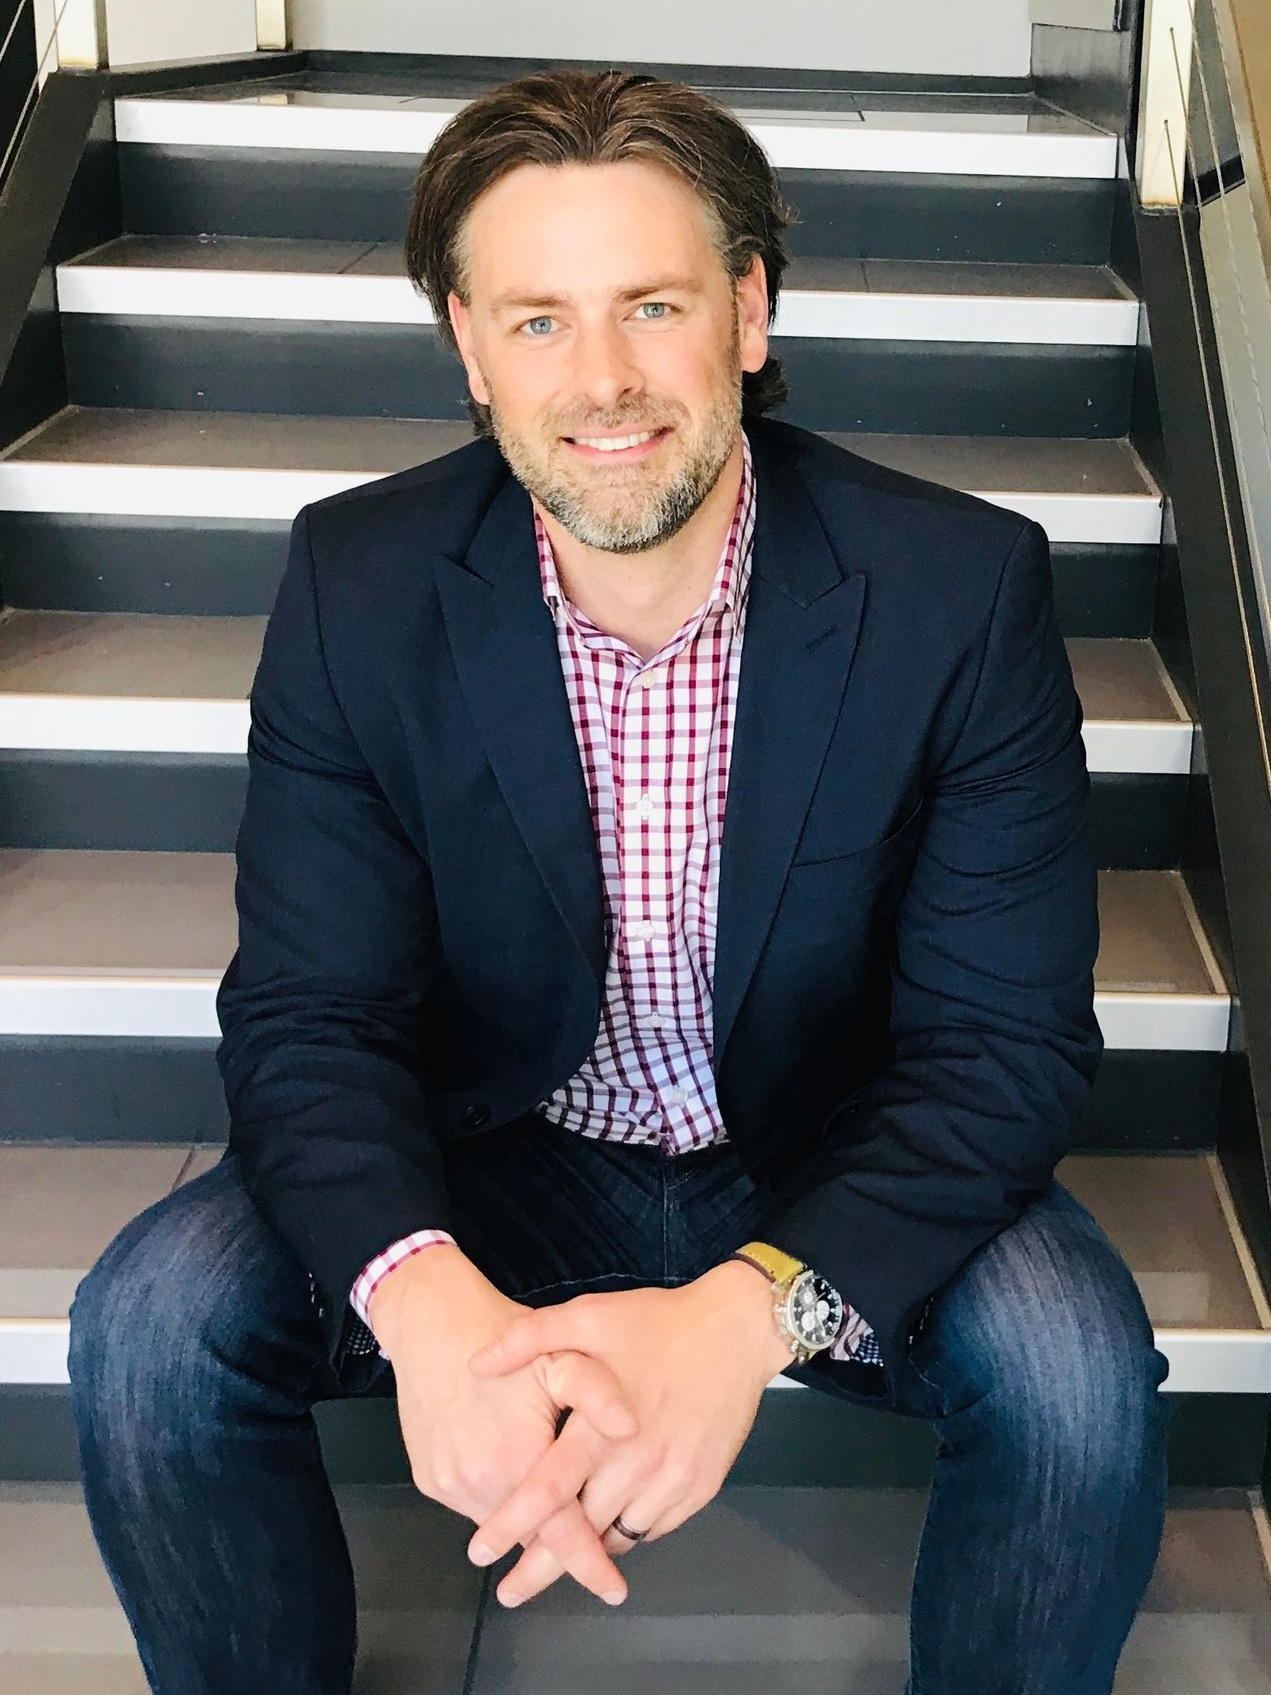 Eric Dahl, Outsourced CMO and marketing expert for VARs.